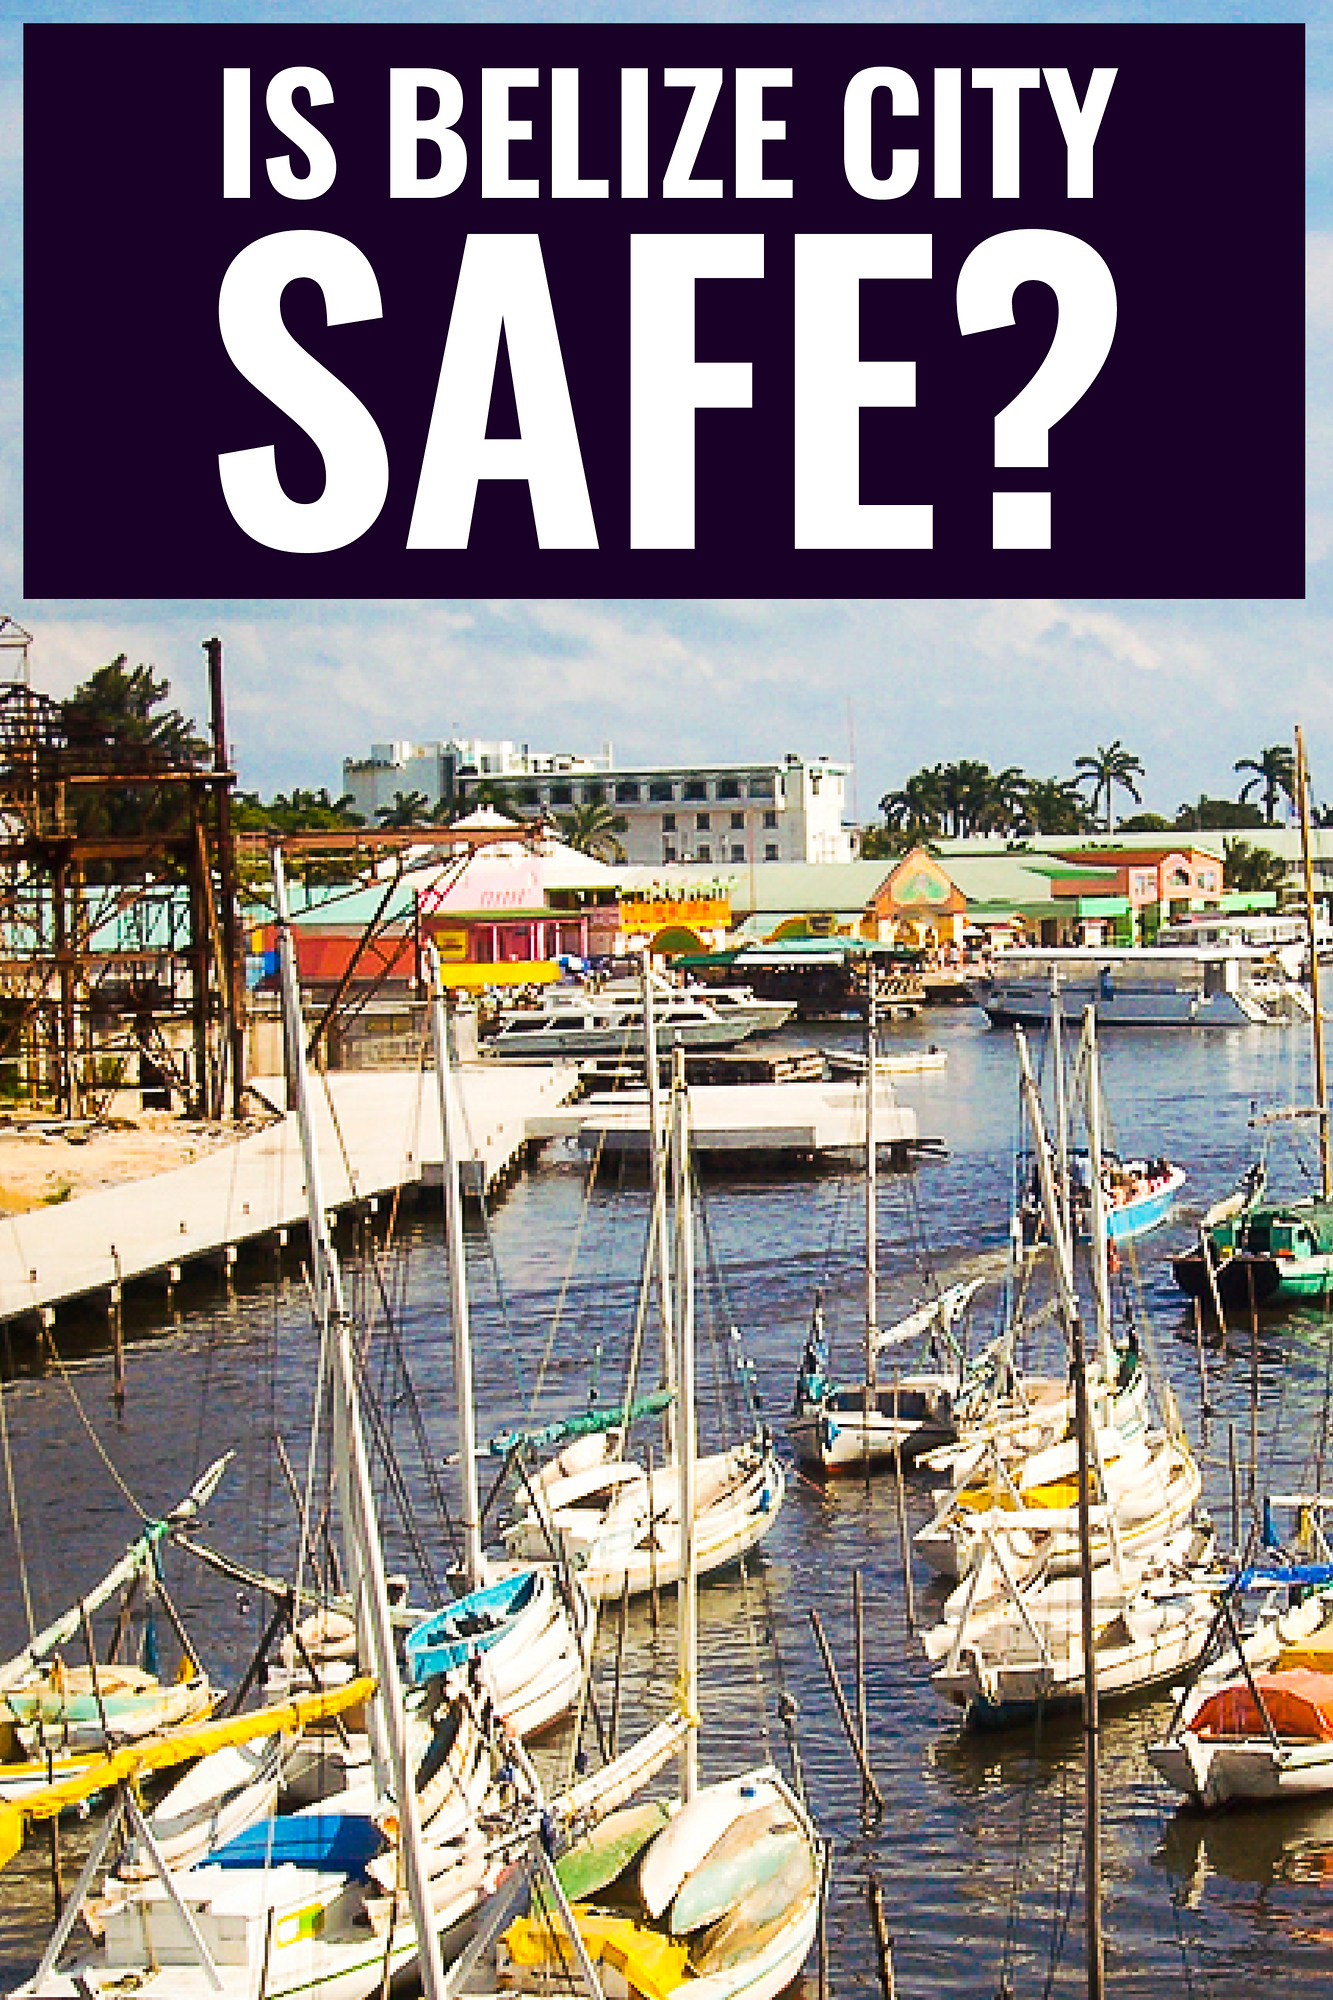 Do not go to Belize City: All About Belize City Crime - Bacon is Magic